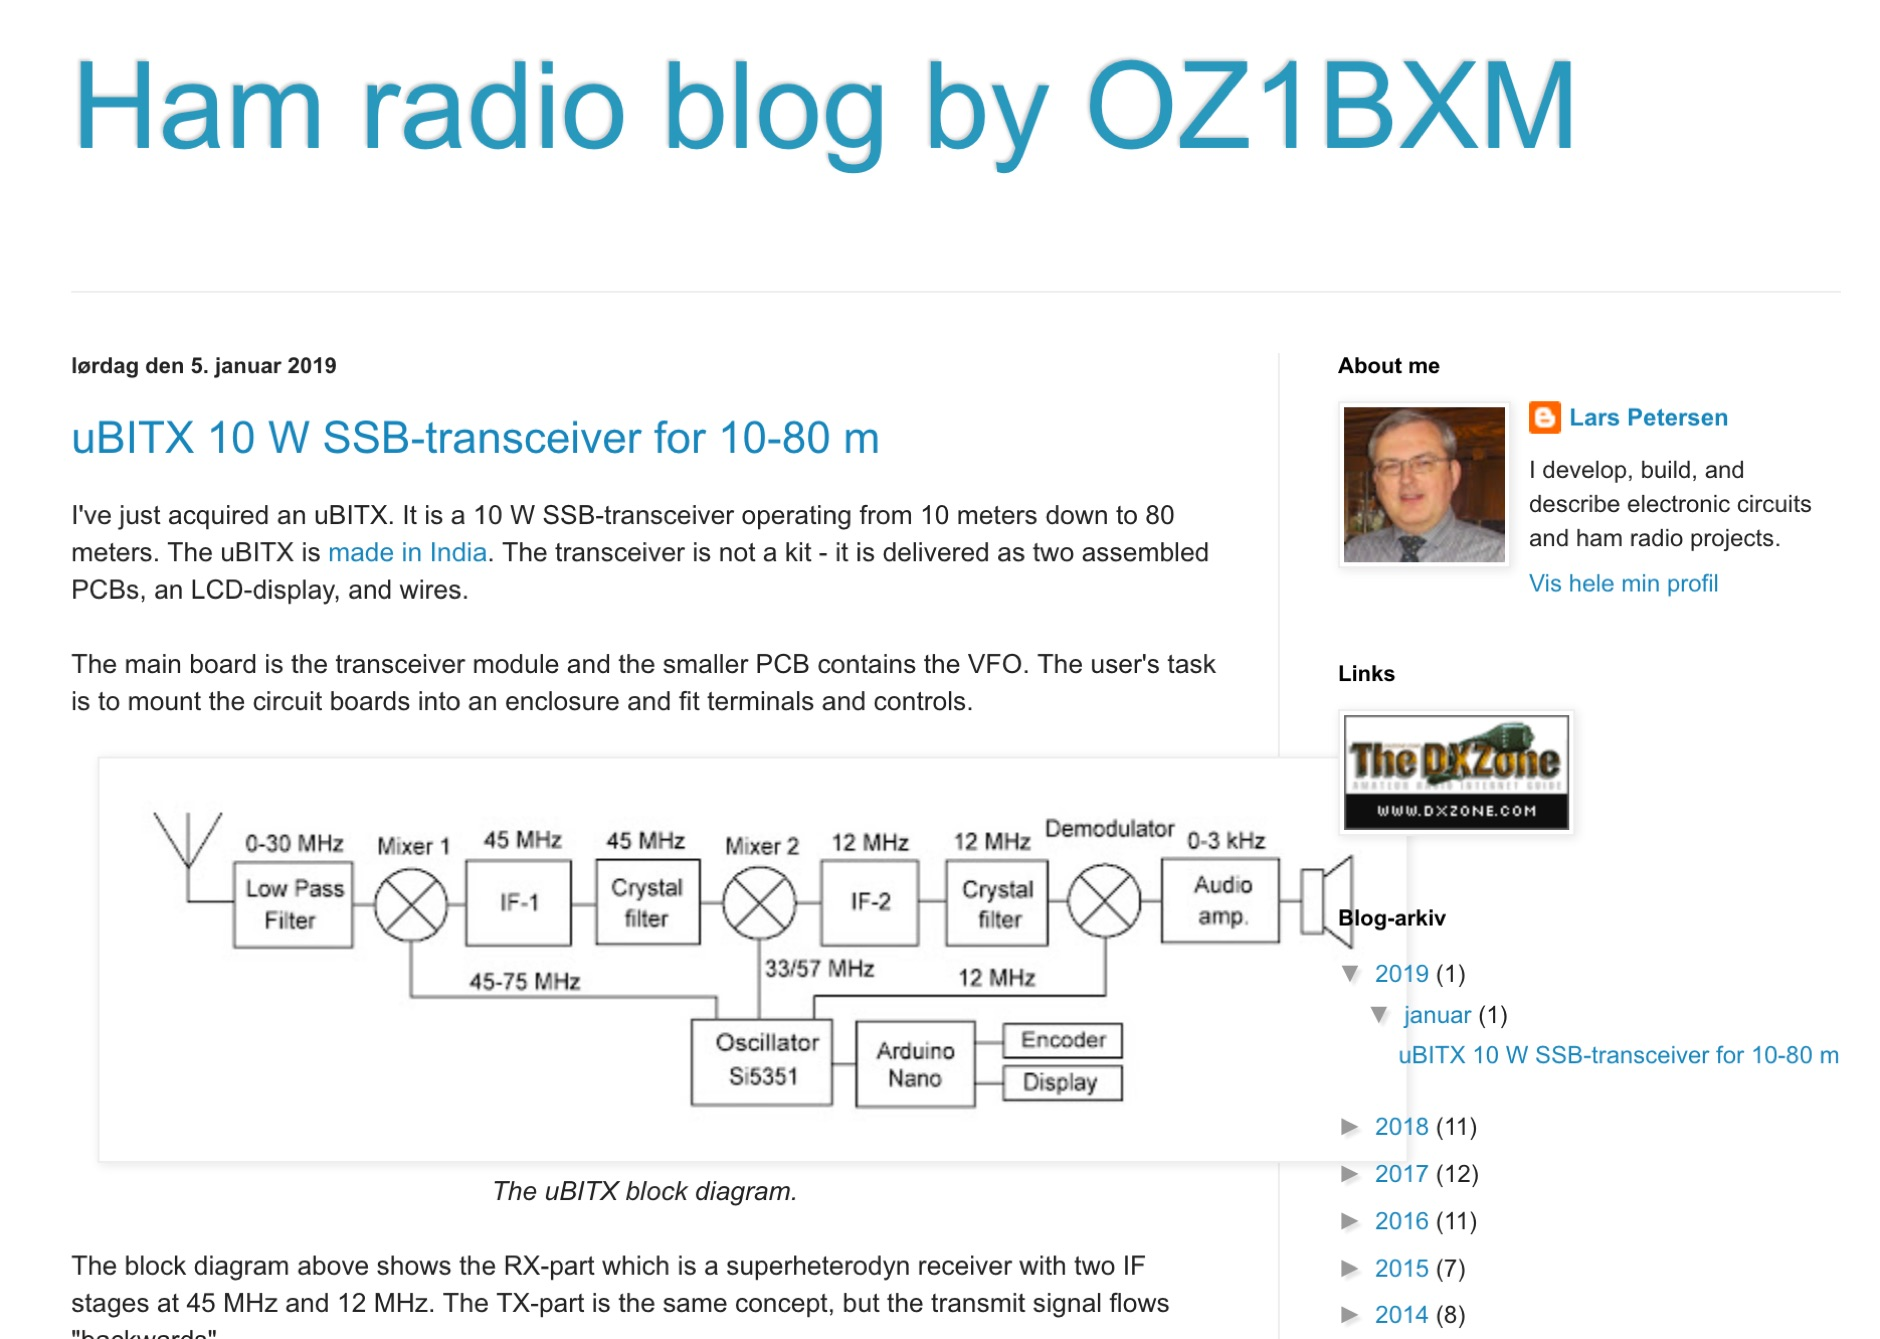 Ham radio blog by OZ1BXM